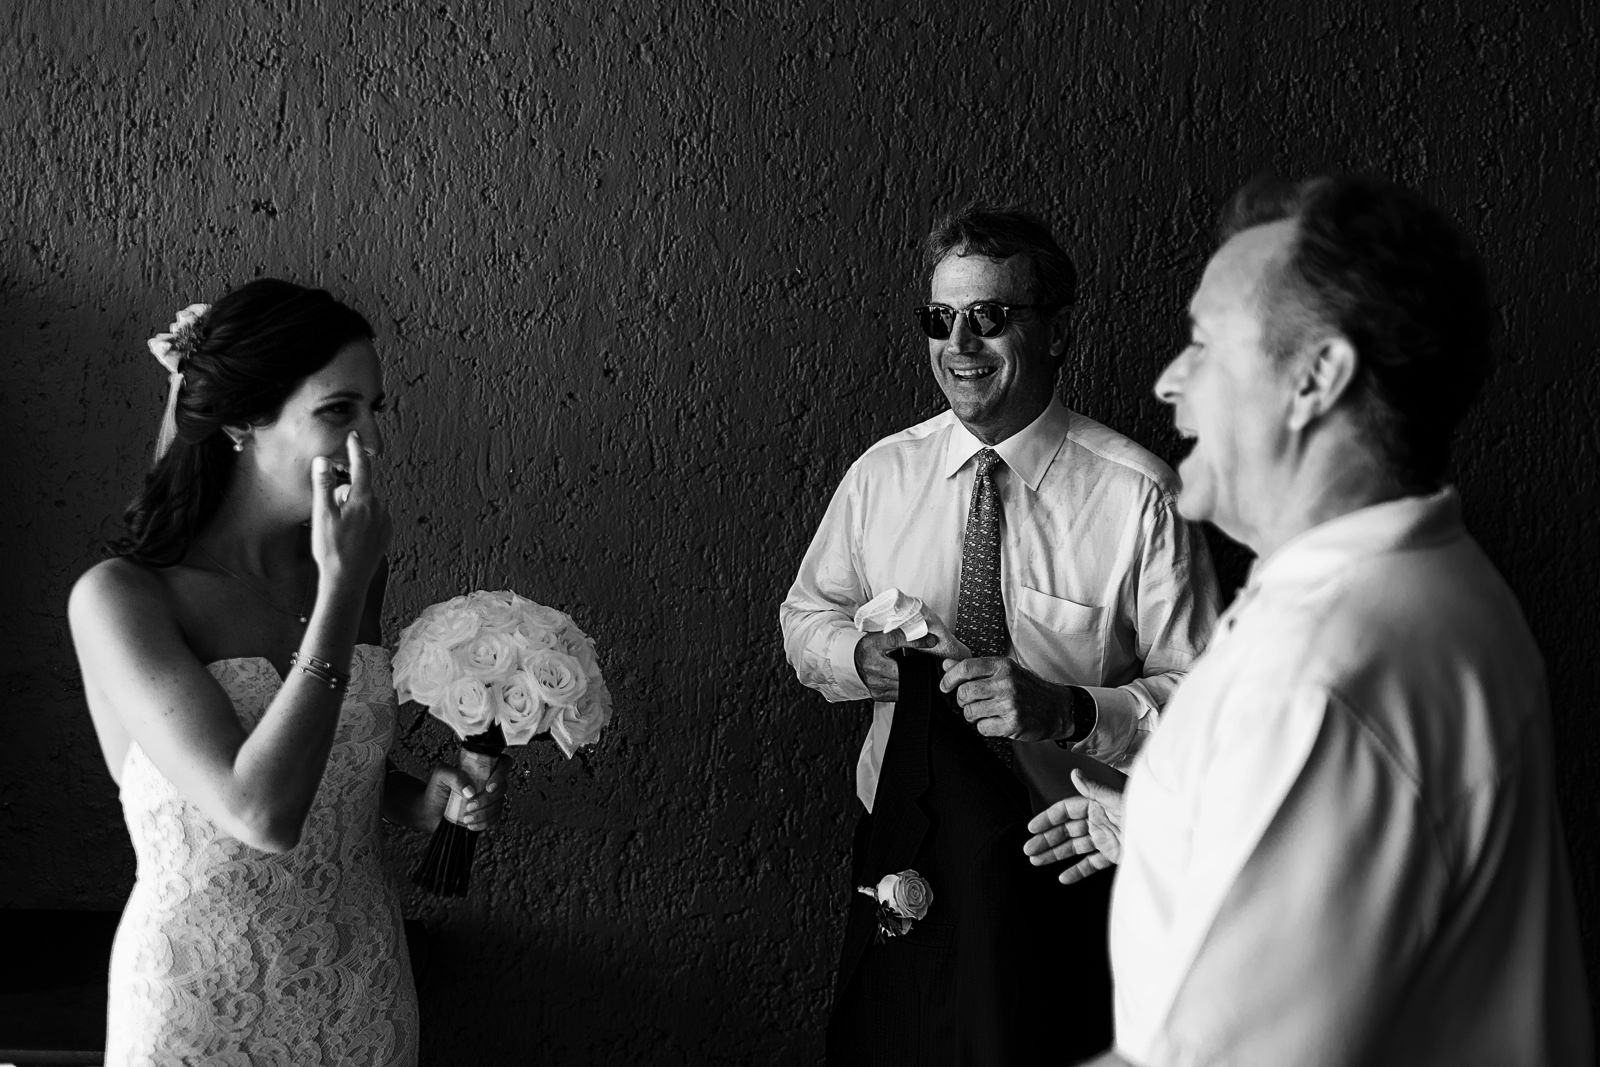 Bride with dad and guest waiting to be called for wedding ceremony - Eder Acevedo cancun los cabos vallarta wedding photographer